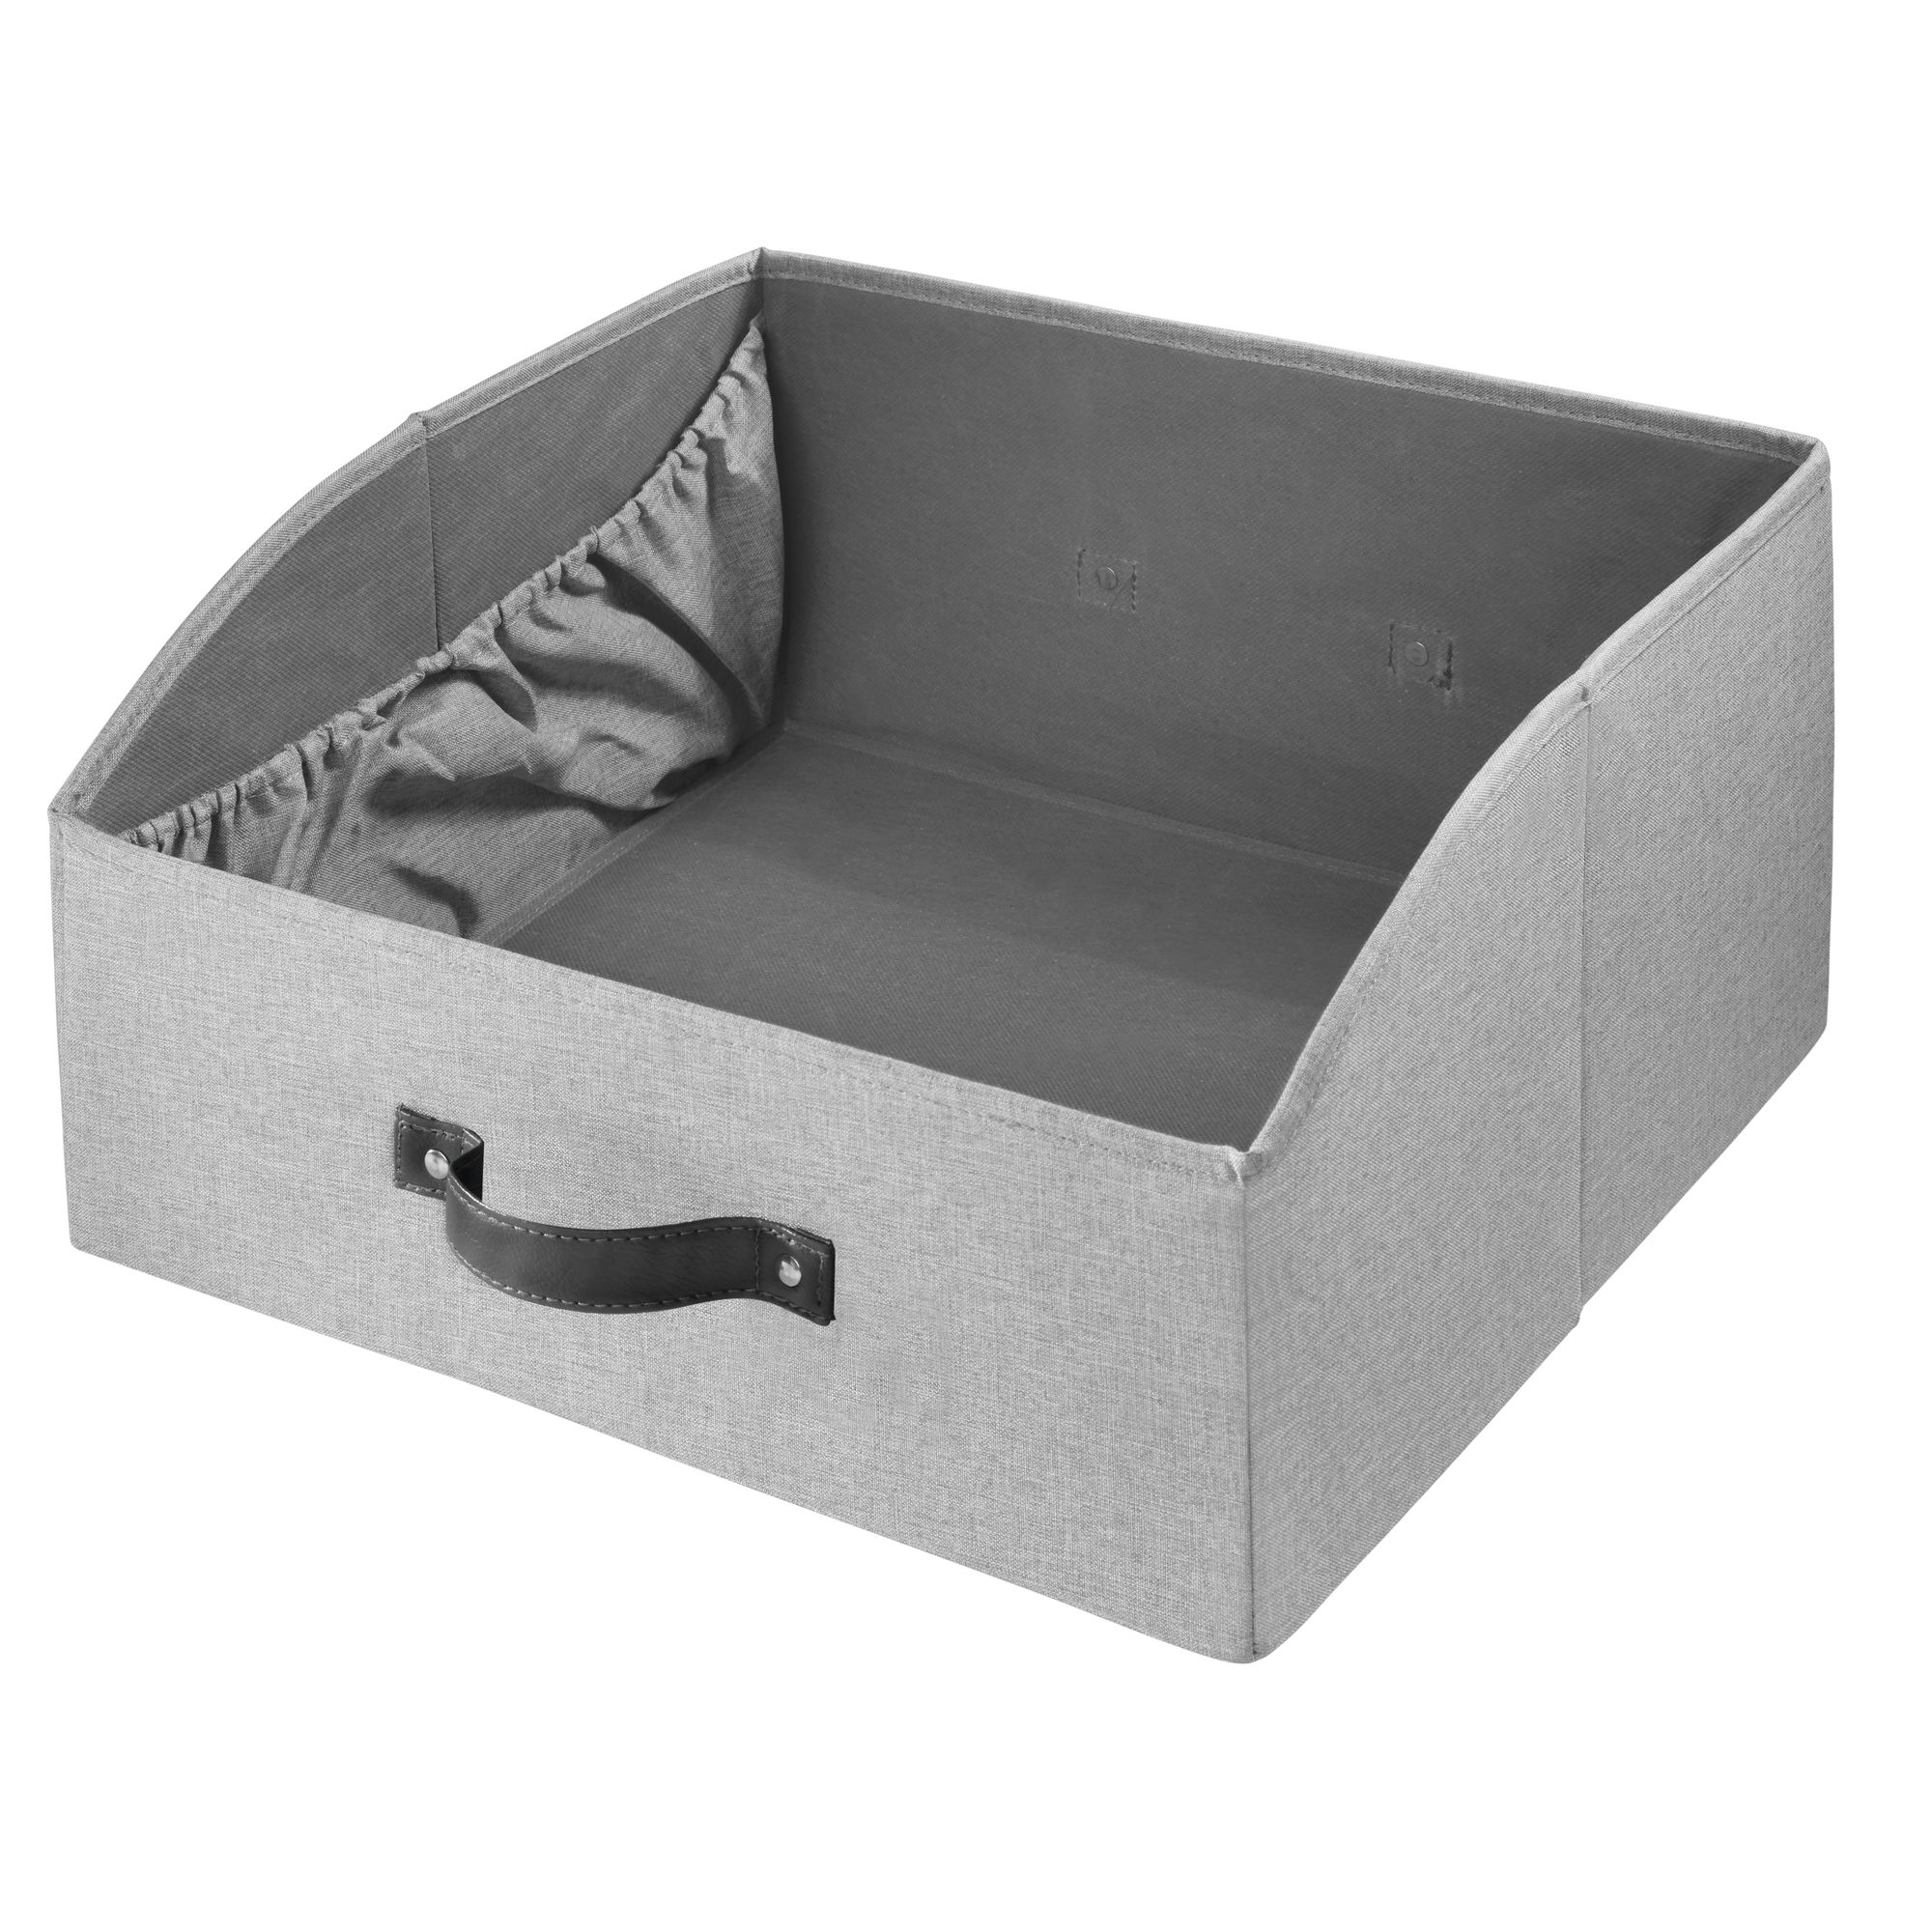 iDesign Codi Two Sided Storage Drawers, Gray, Pack of 2